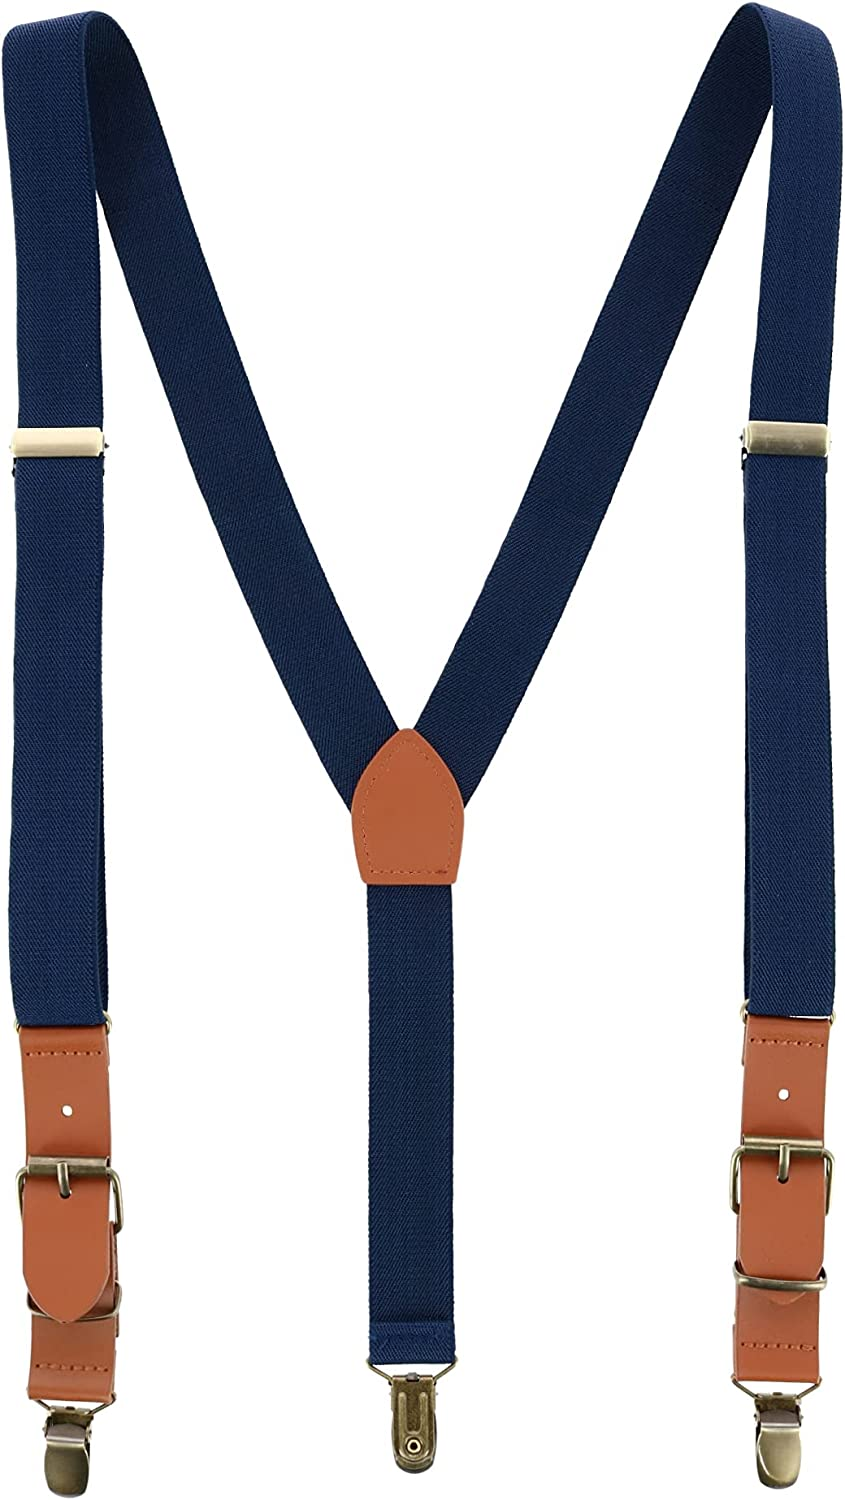 Trendy Yuppy Men's 1 Inch Wide Suspender with Faux Leather Buckle and Clip-Ends